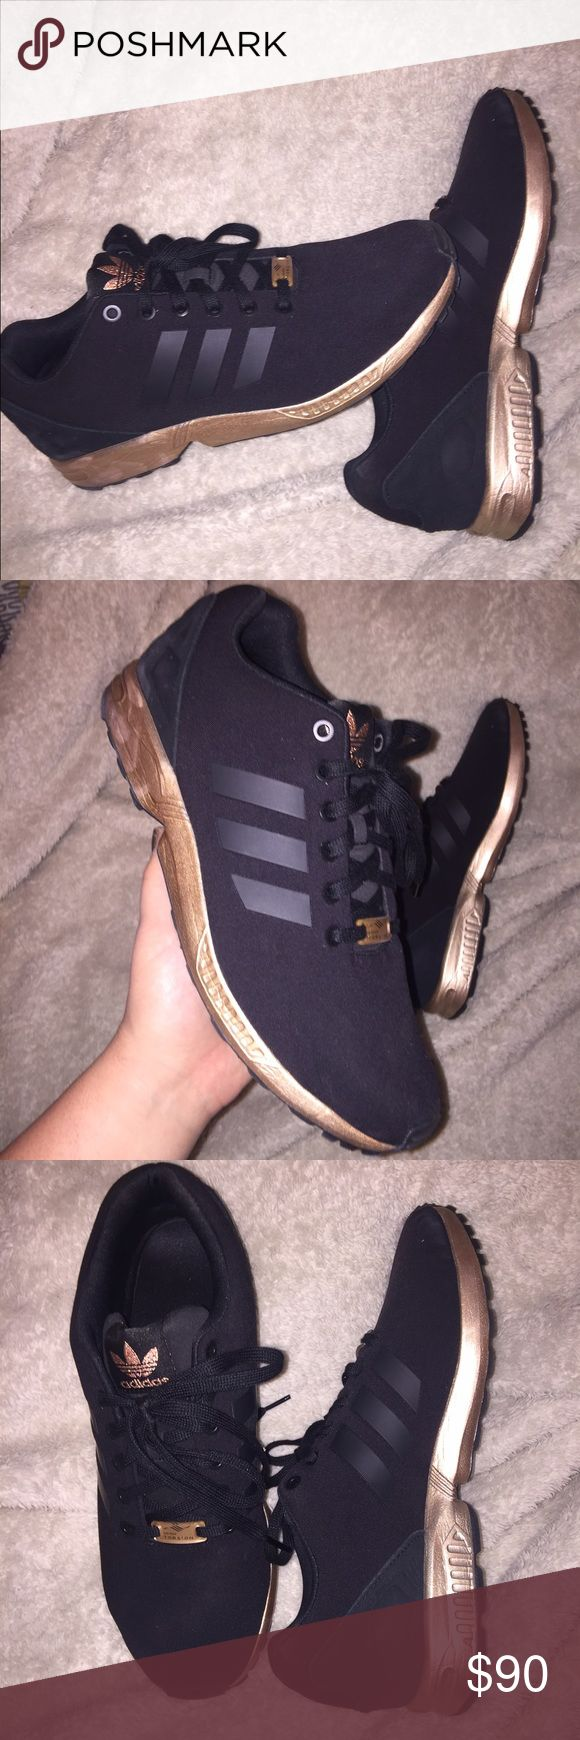 ADIDAS TORSION ROSE GOLD AND BLACK BEAUTIFUL ROSE GOLD AND BLACK ADIDAS. SOLD OUT EVERYWHERE!! Never worn out of the house. Mint condition. Size 11 Adidas Shoes Athletic Shoes